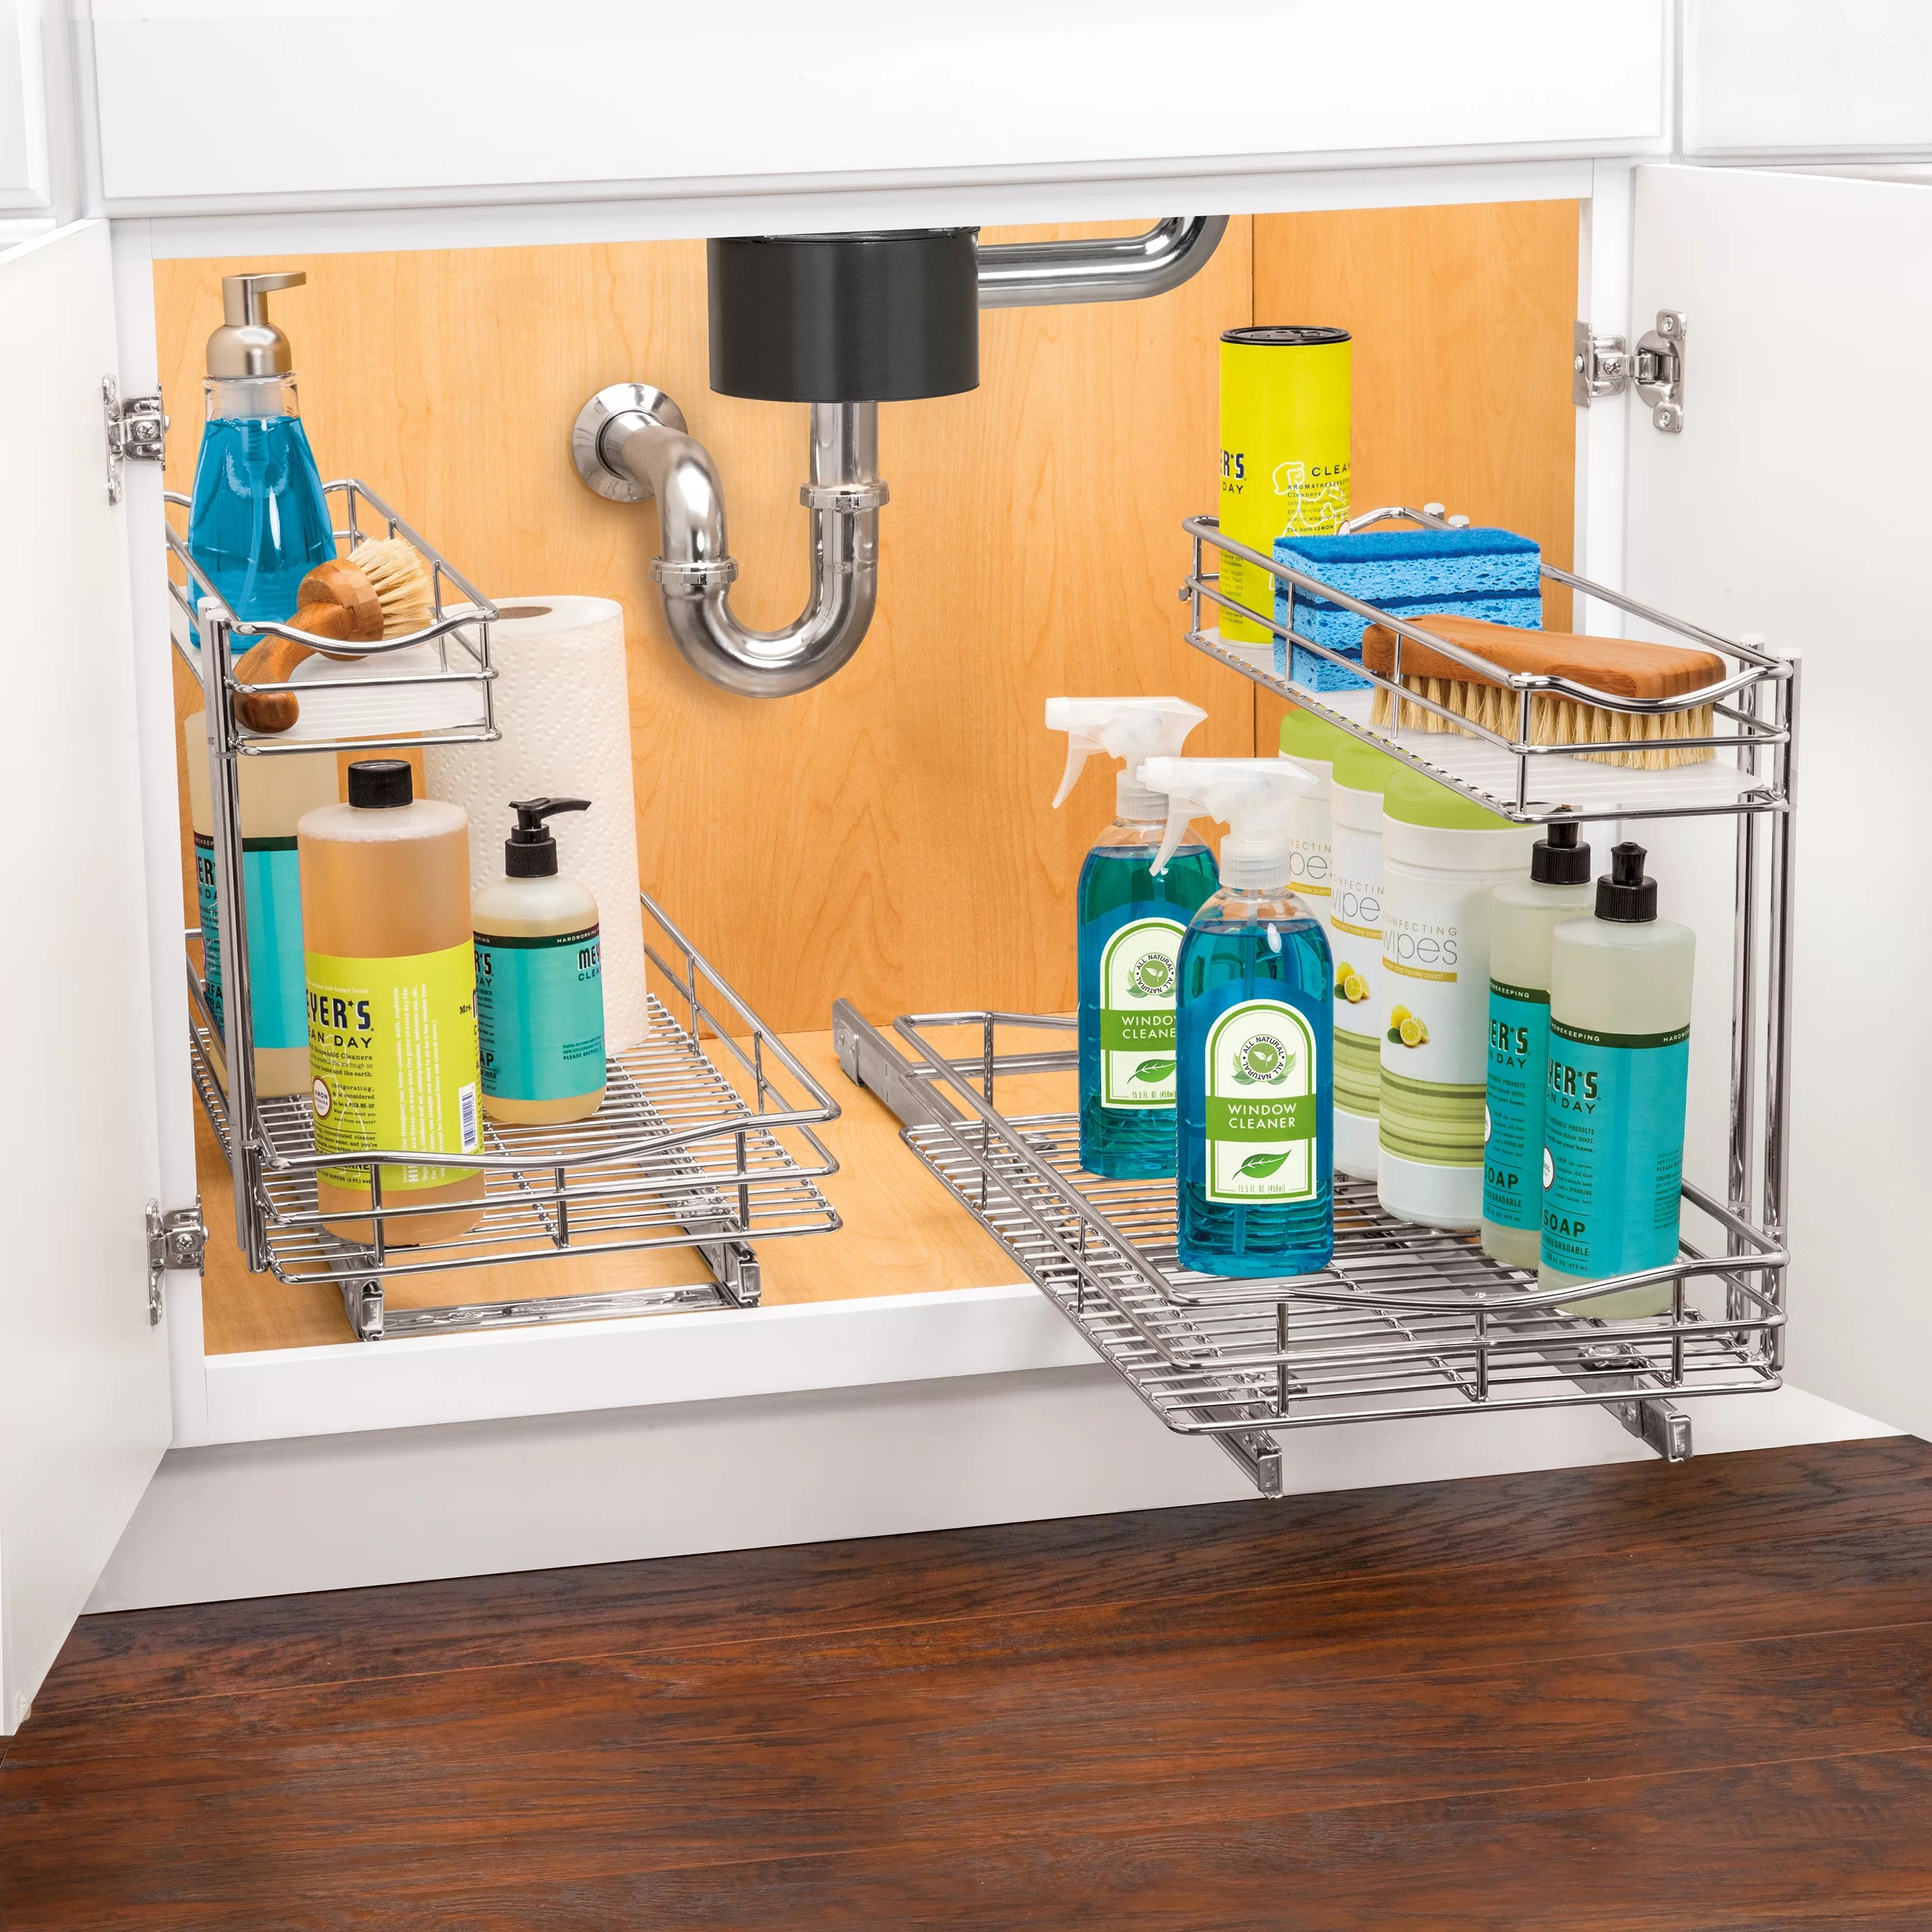 Rev A Shelf Under Sink Storage System 13 1 2 Inch W 4sbsu: Under Sink Shelf Organizer